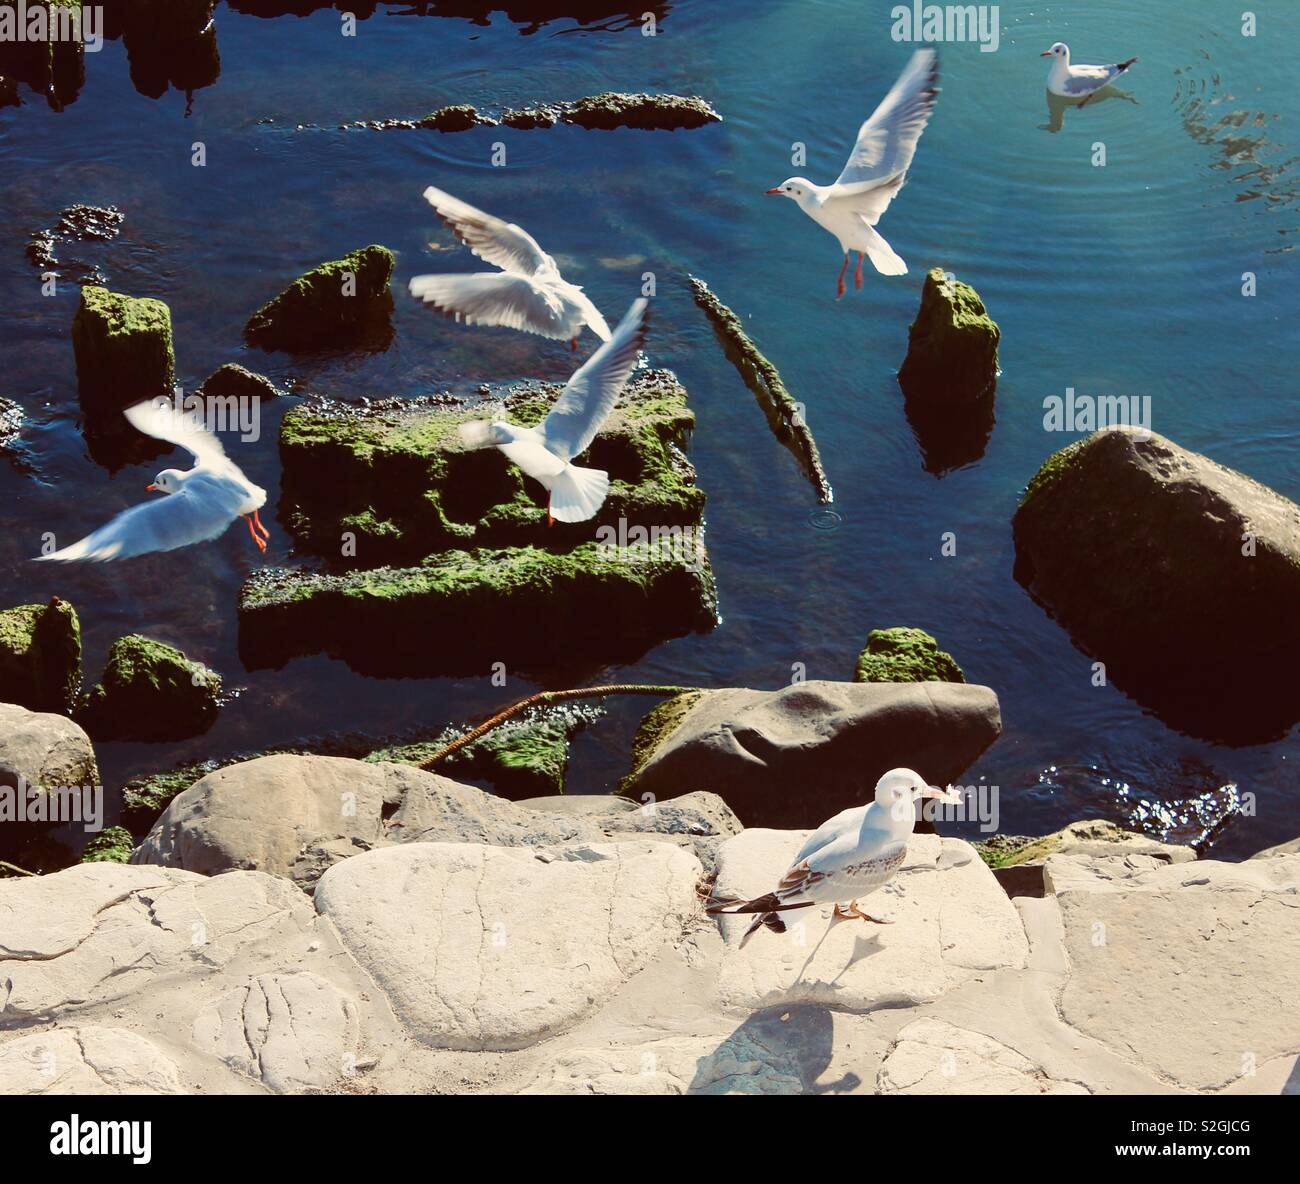 seagulls looking for feed near Caspian sea - Stock Image